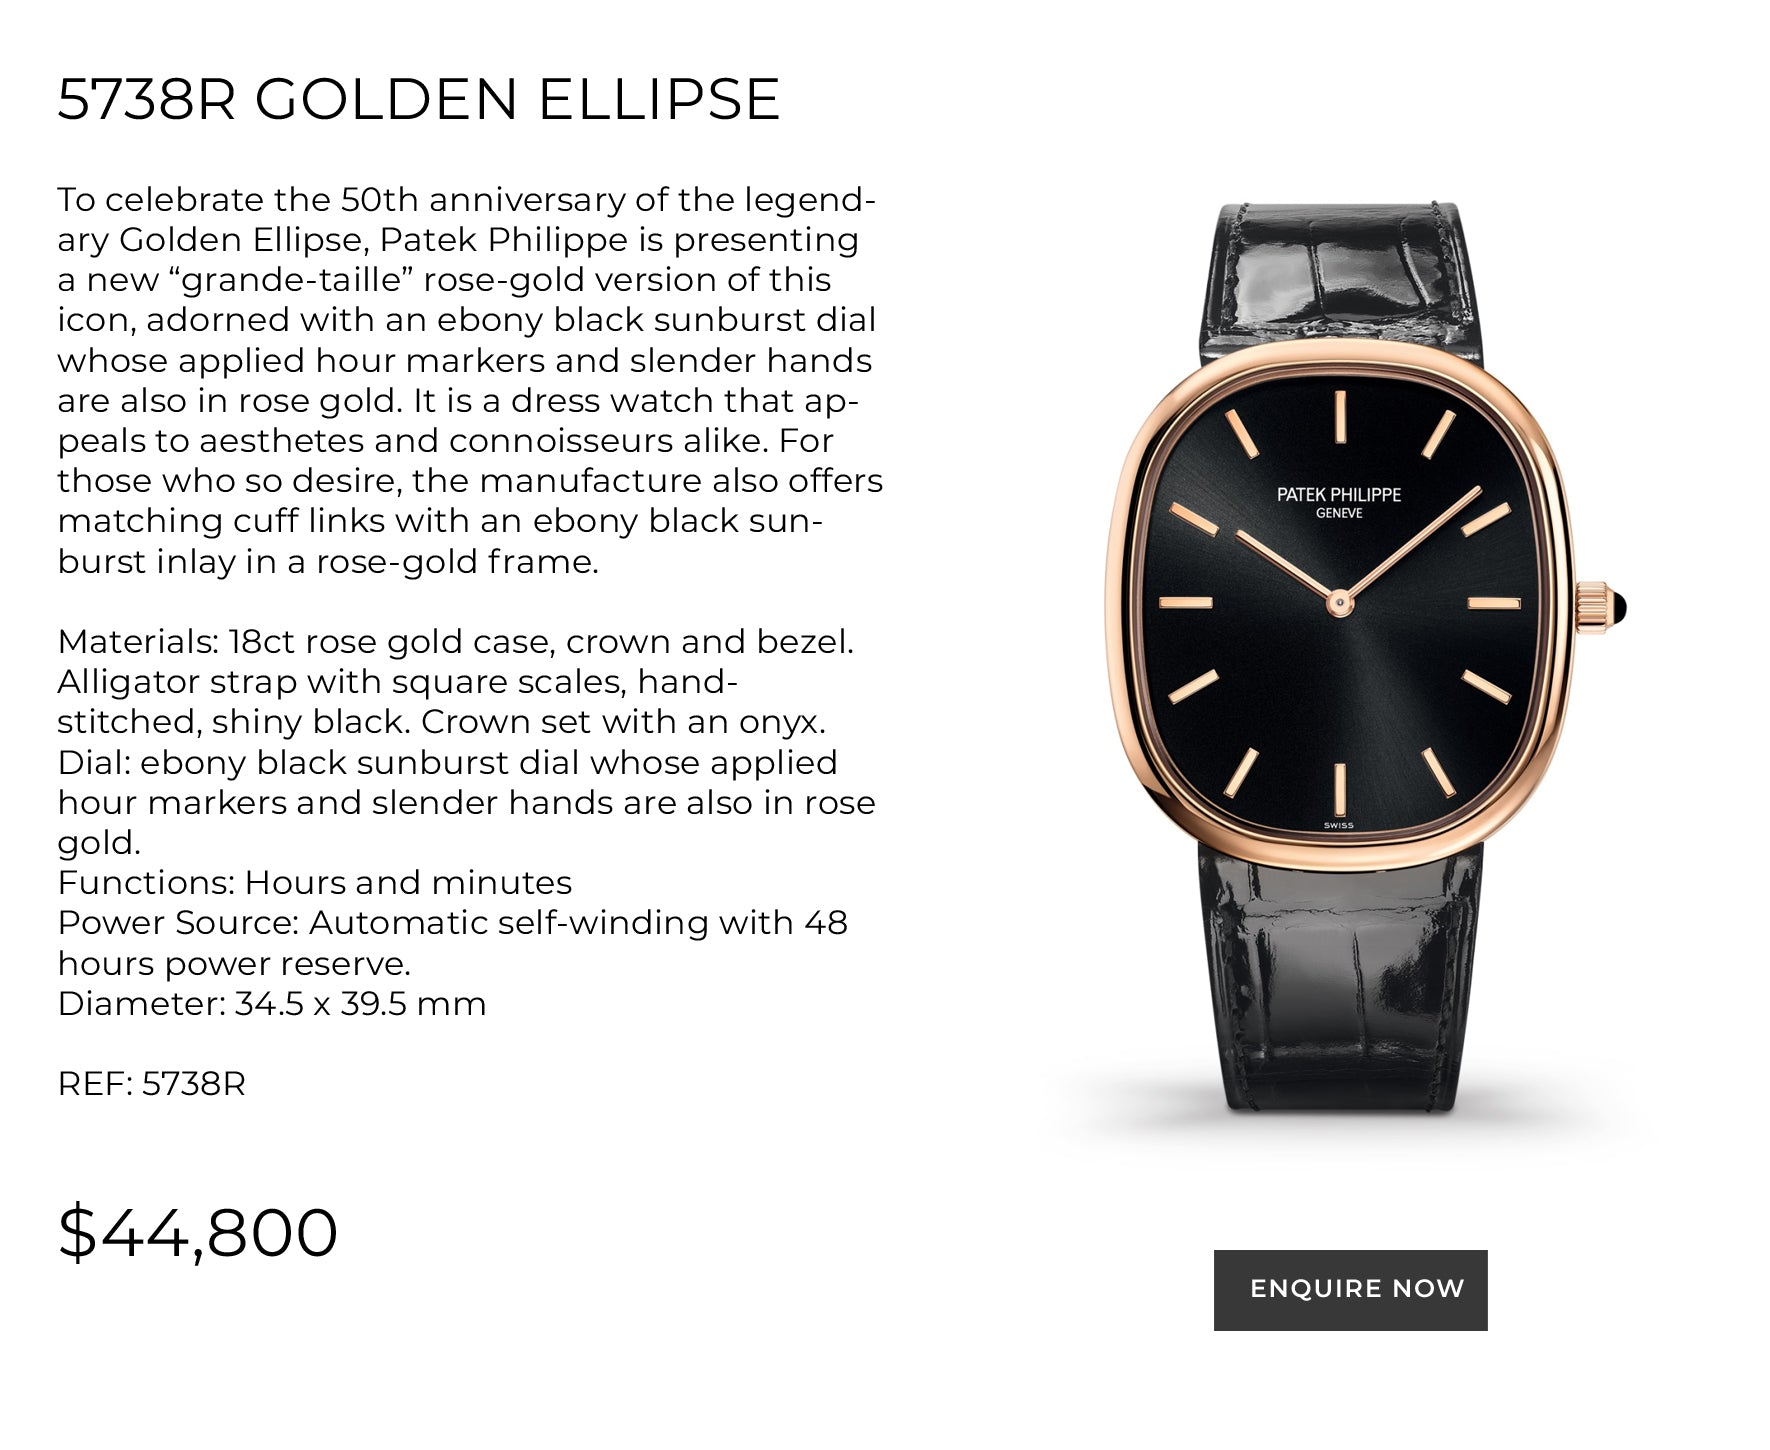 5738R - GOLDEN ELLIPSE